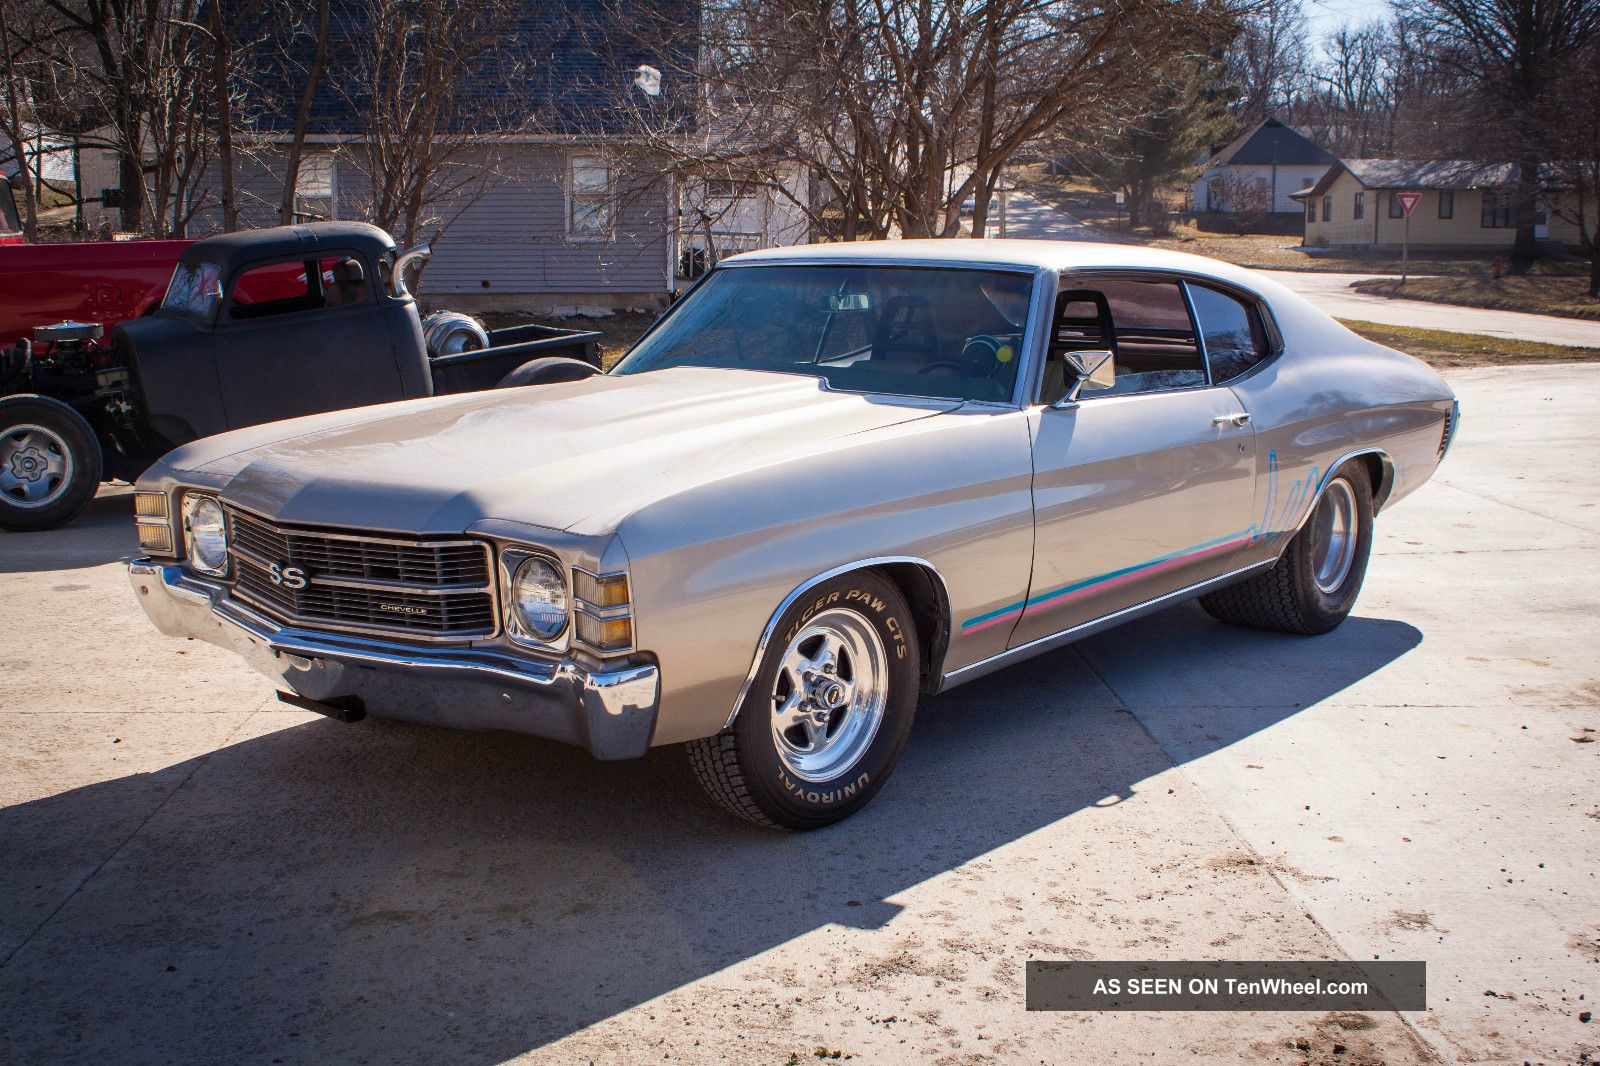 1971 Chevelle Pro Street Rod - Street Legal - Zz 502ci / 502hp Gm  Performance